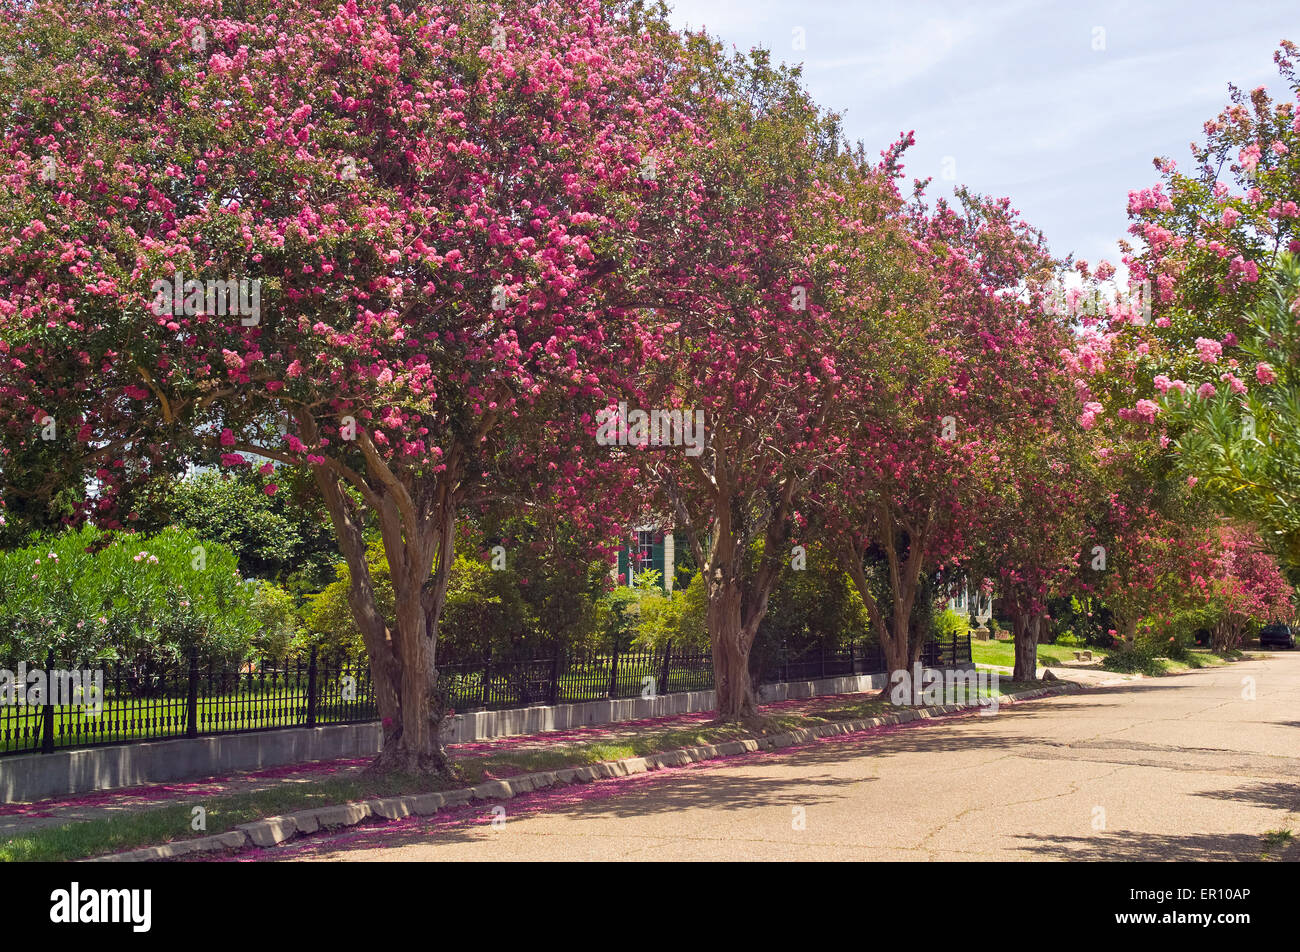 Flowering Crape Myrtle trees bring brilliant pink colors to a quiet residential street in historic Natchez, Mississippi, - Stock Image